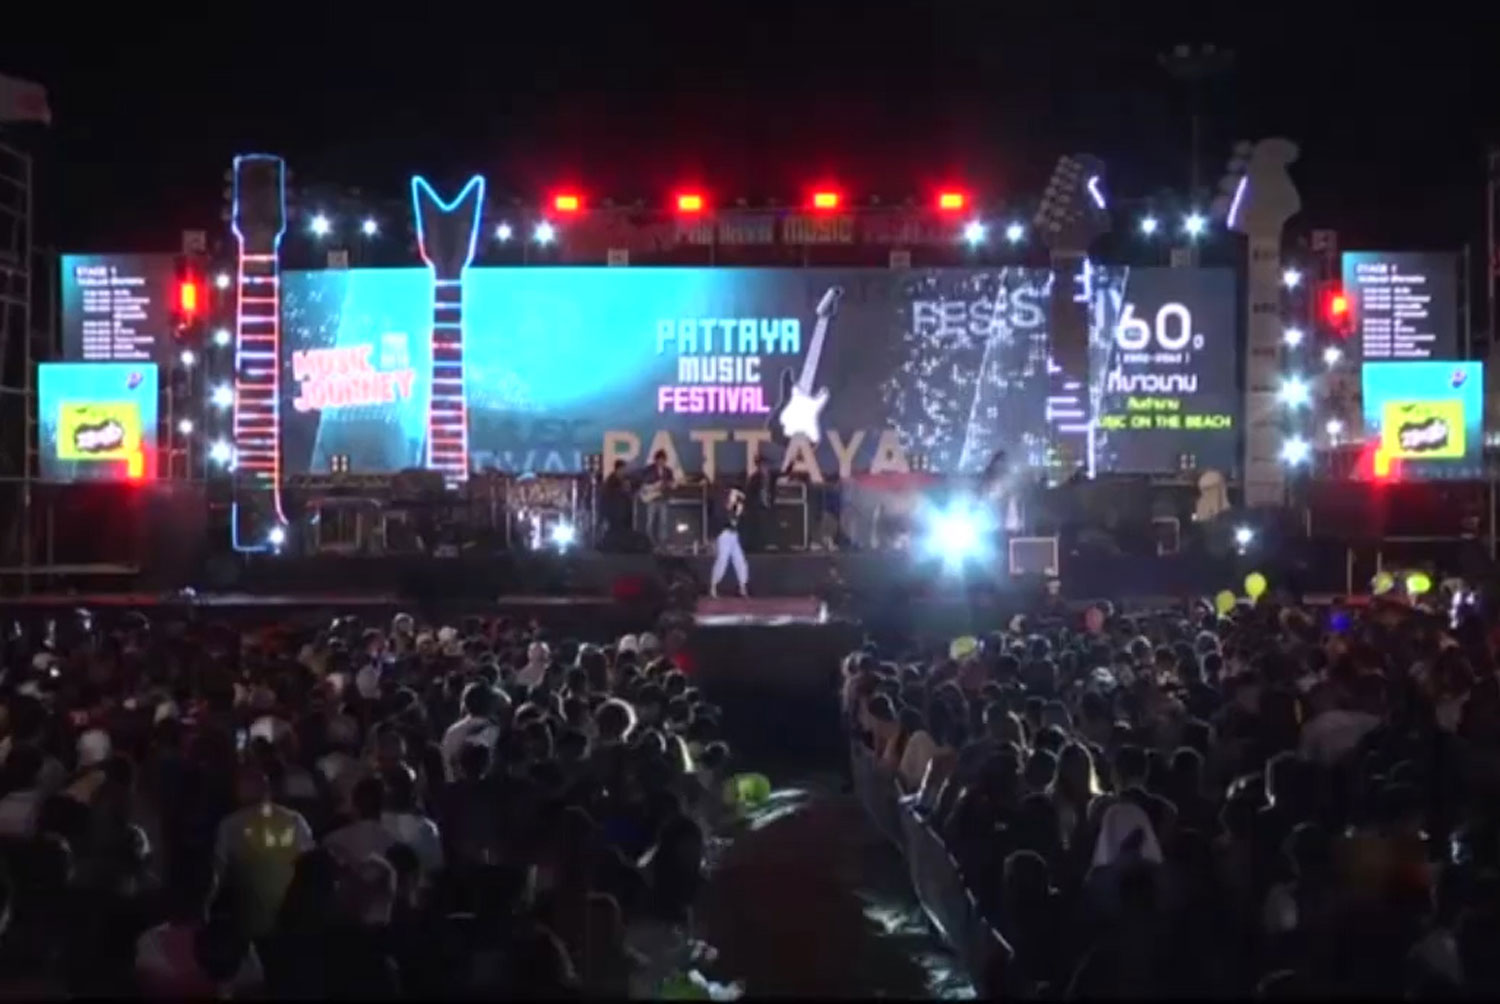 The Pattaya Music Festival is one of five major events that the Pattaya City Municipality will hold to boost tourism after the country reopens. (Photo: Chaiyot Pupattanapong)